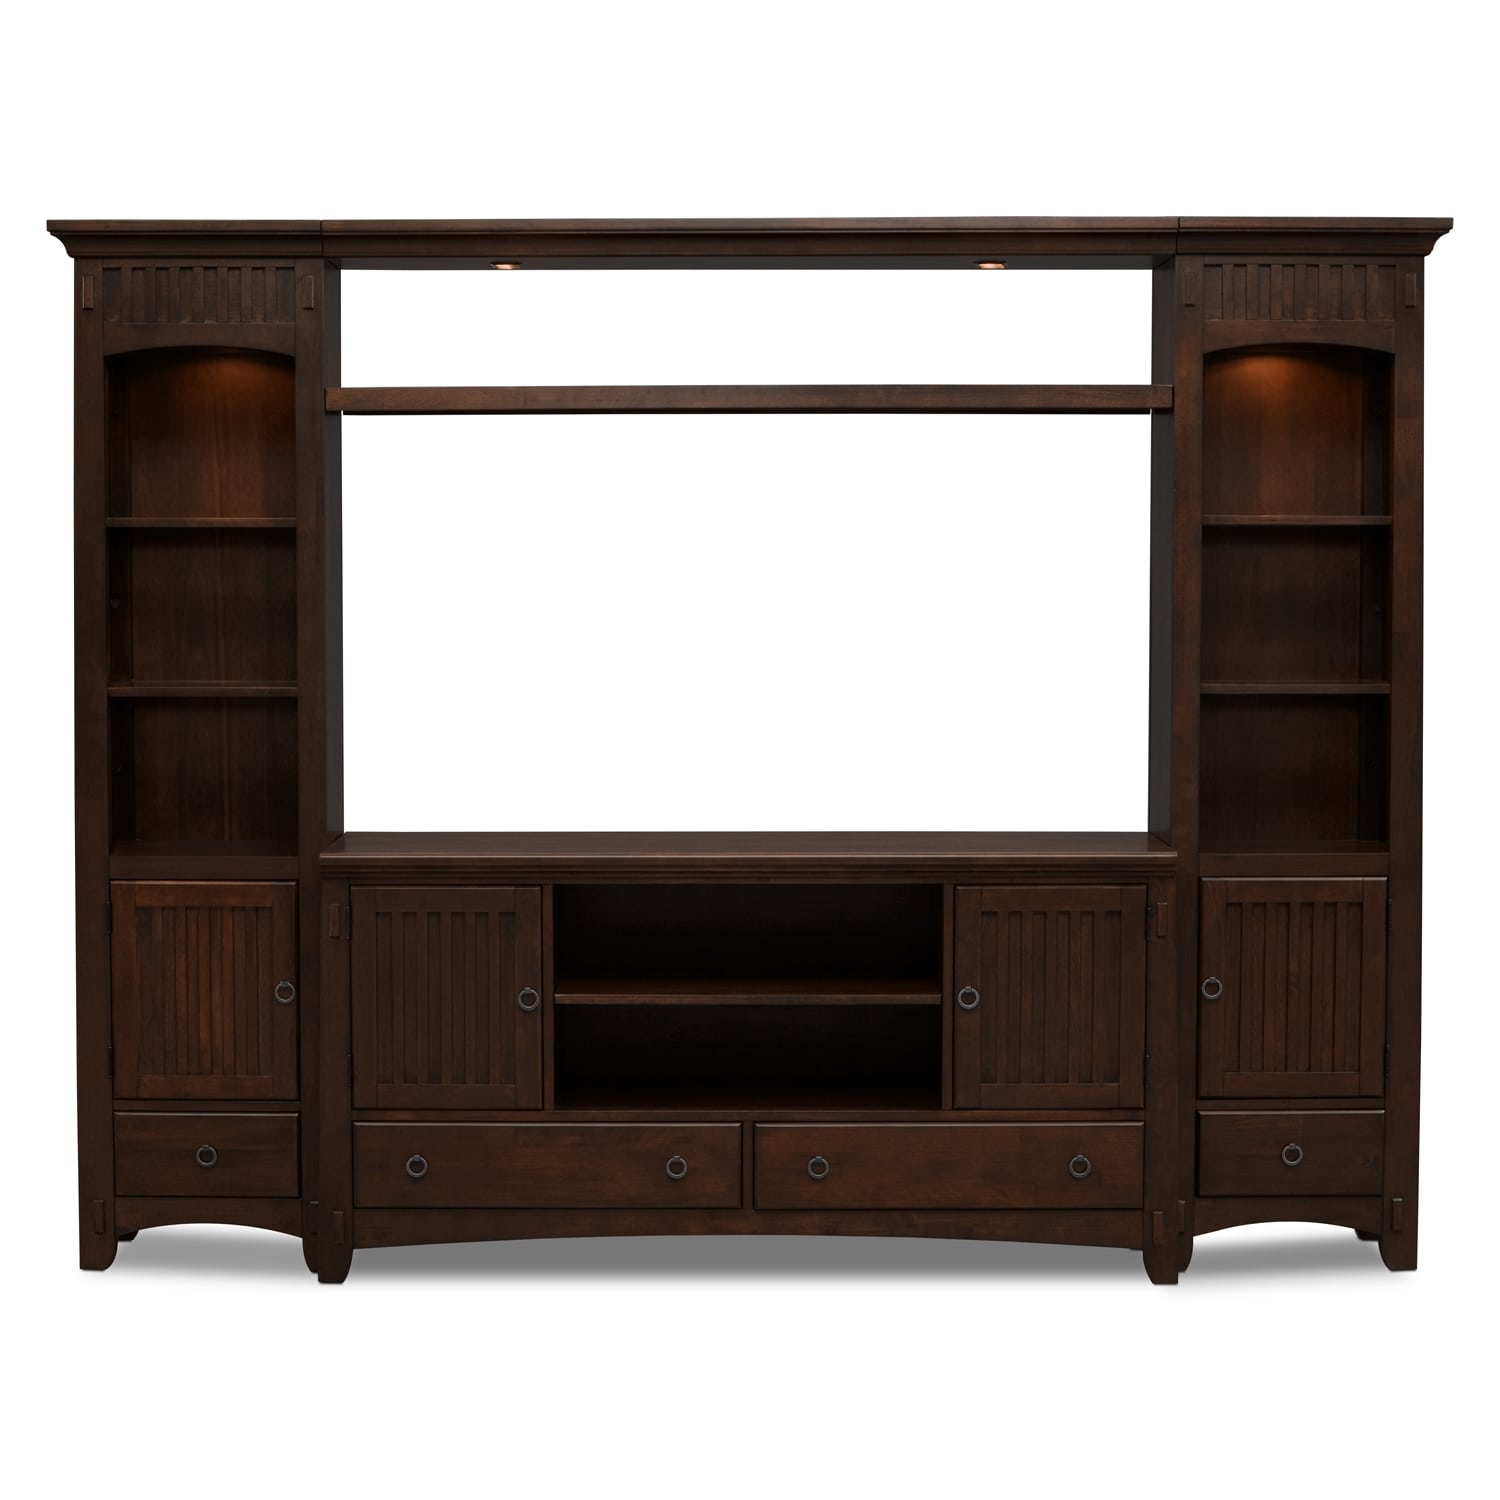 Arts crafts 4 piece entertainment wall unit chocolate Wall unit furniture